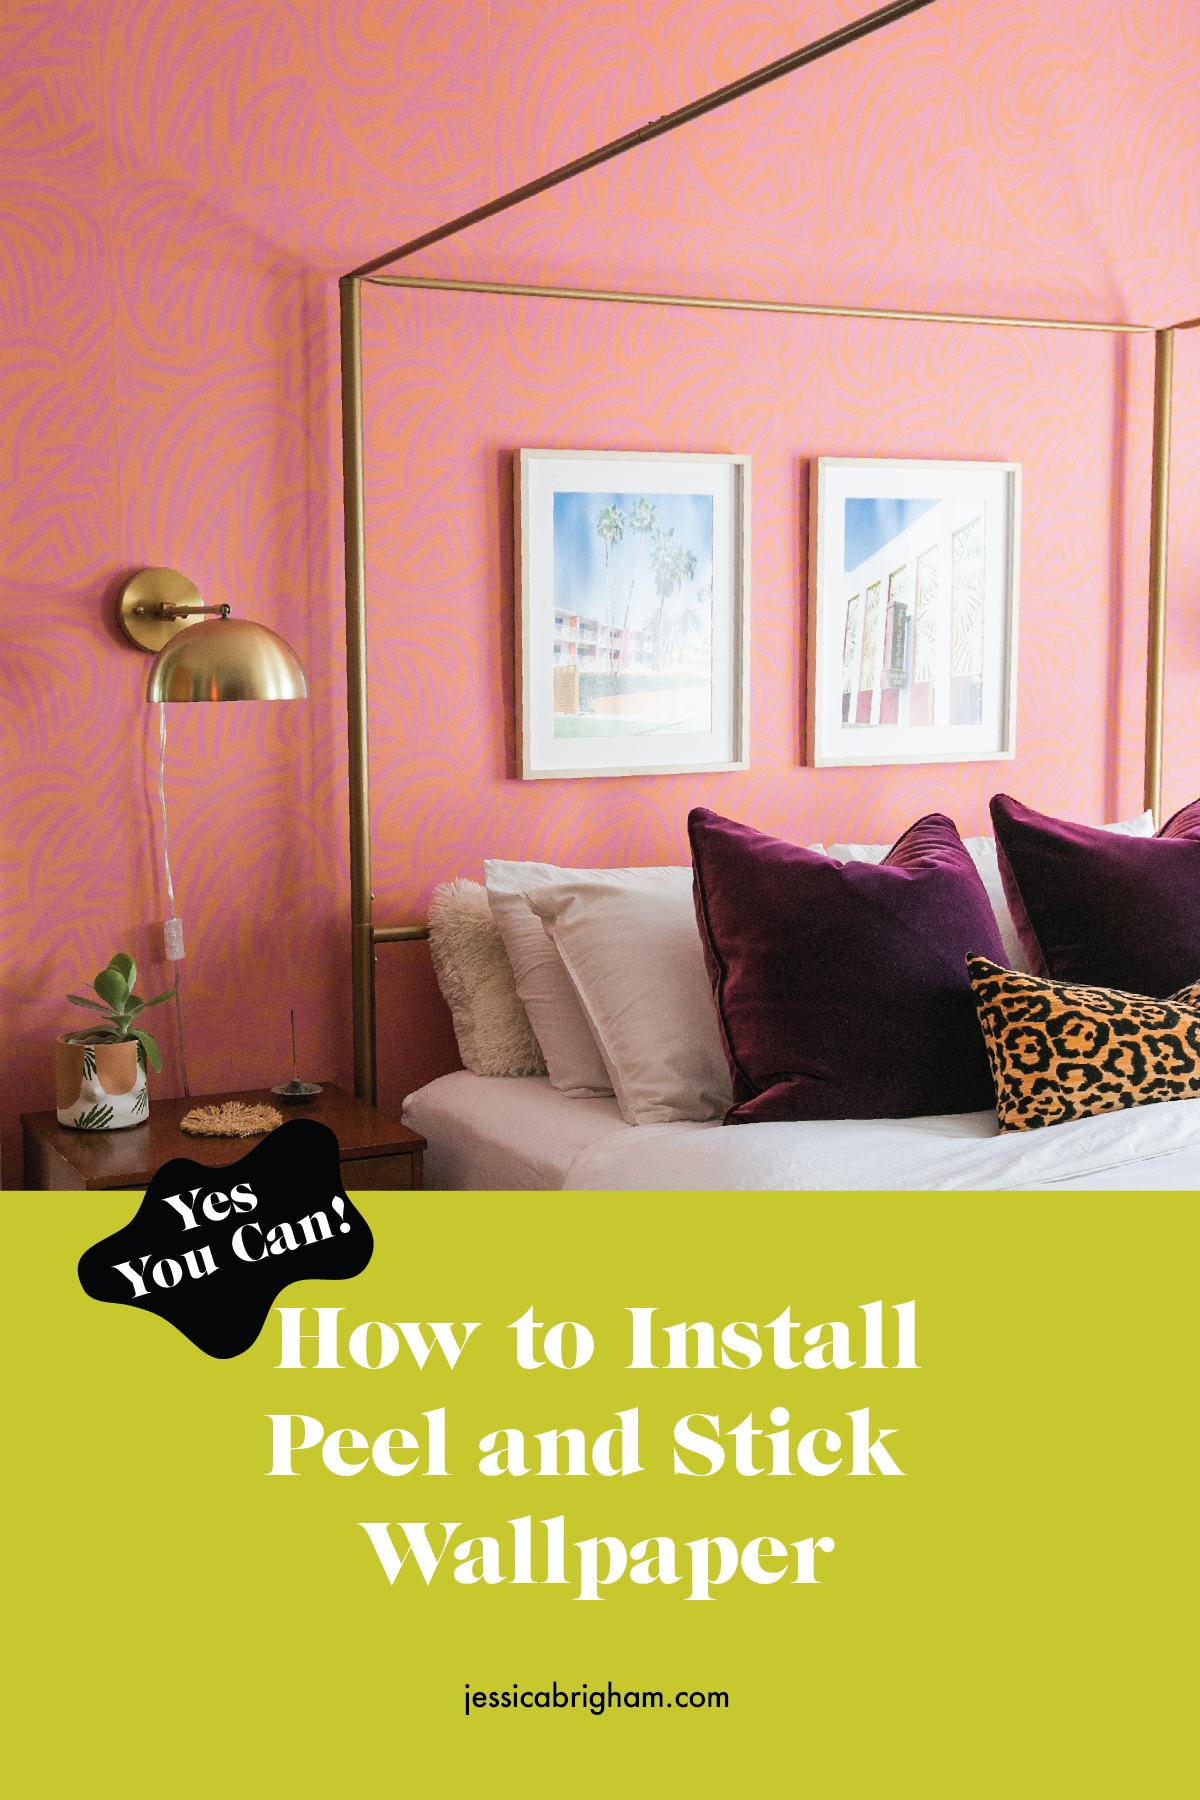 Yes You Can! How to Install Peel and Stick Wallpaper | DIY Hang Removable Wallpaper | Jessica Brigham